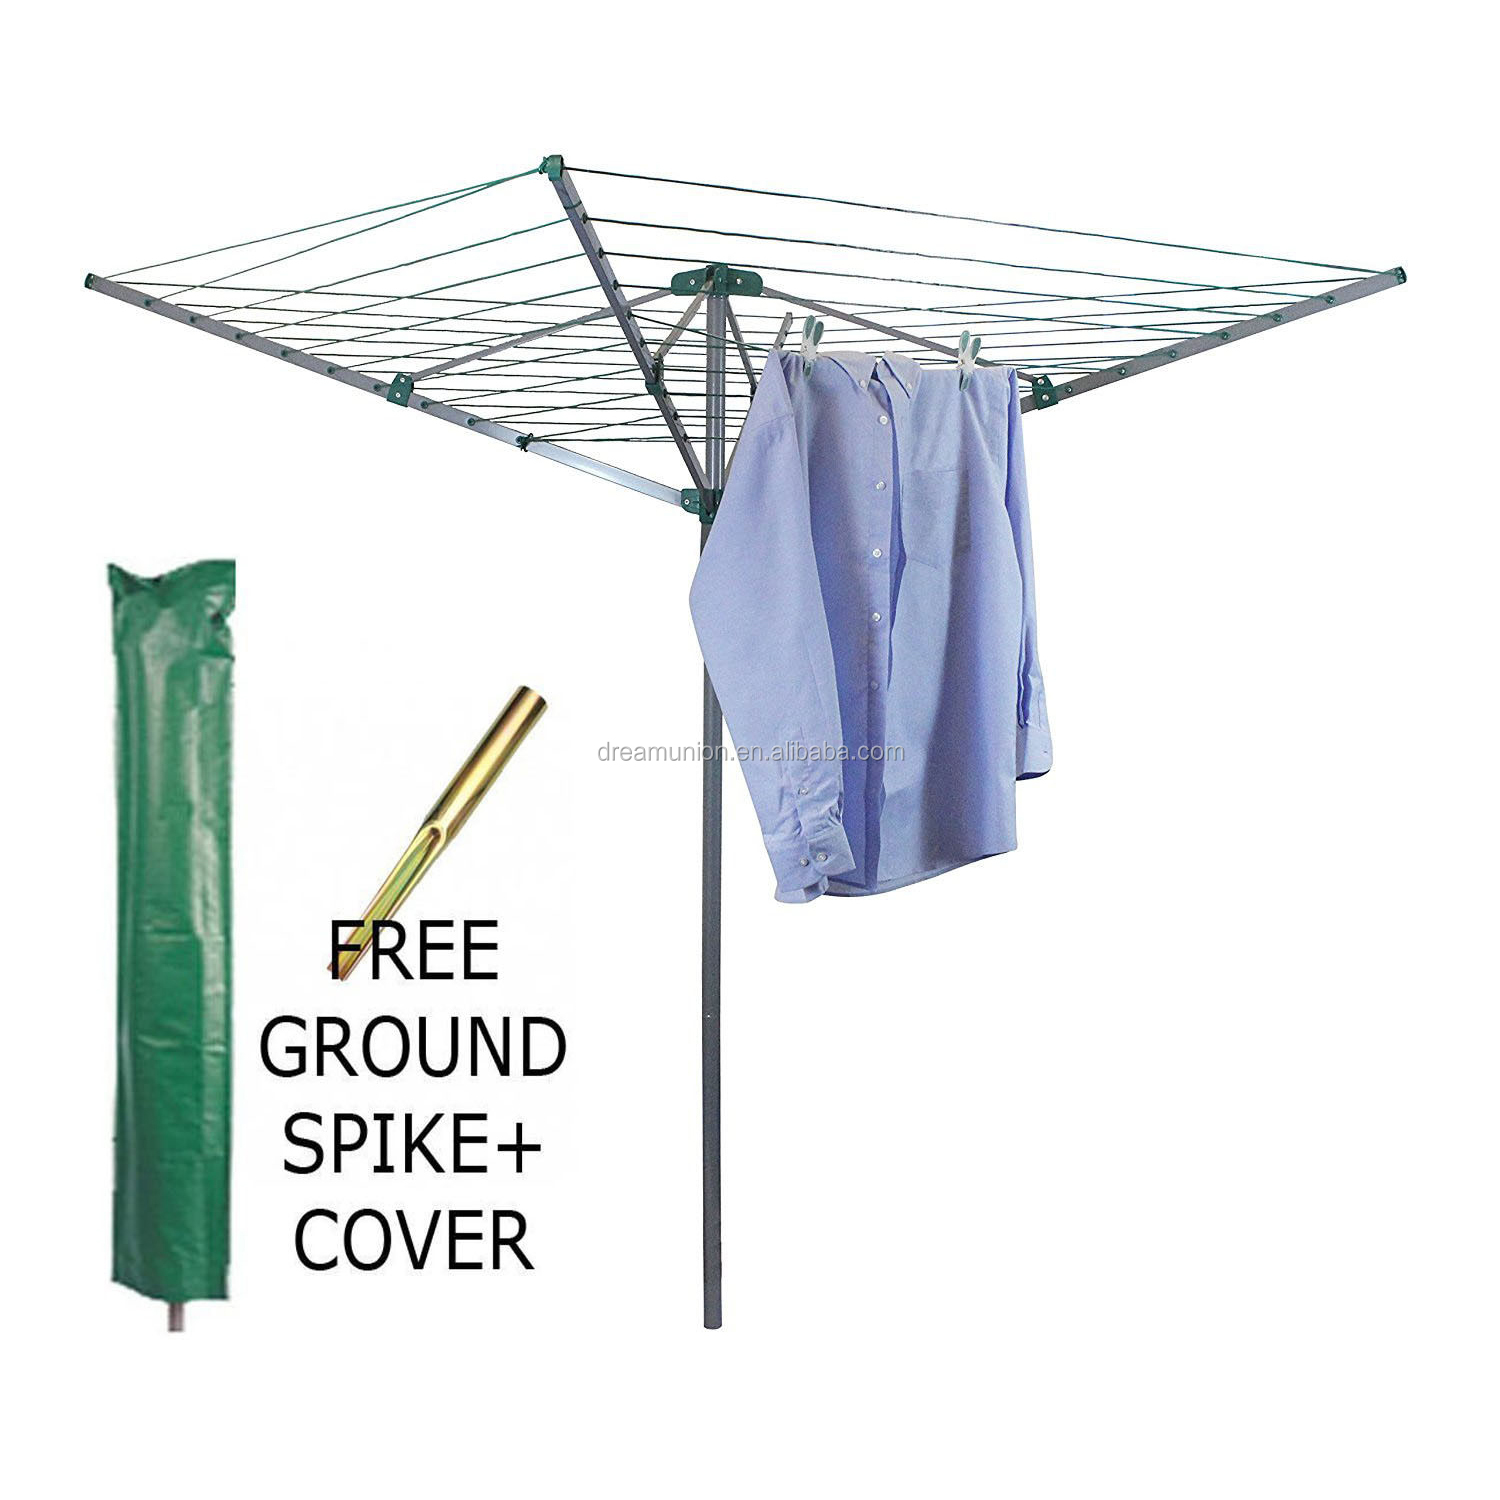 4ARMS ROTARY CLOTHES AIRER OUTDOOR WASHING LINE GROUND DRYER+FREE COVER /& SPIKE